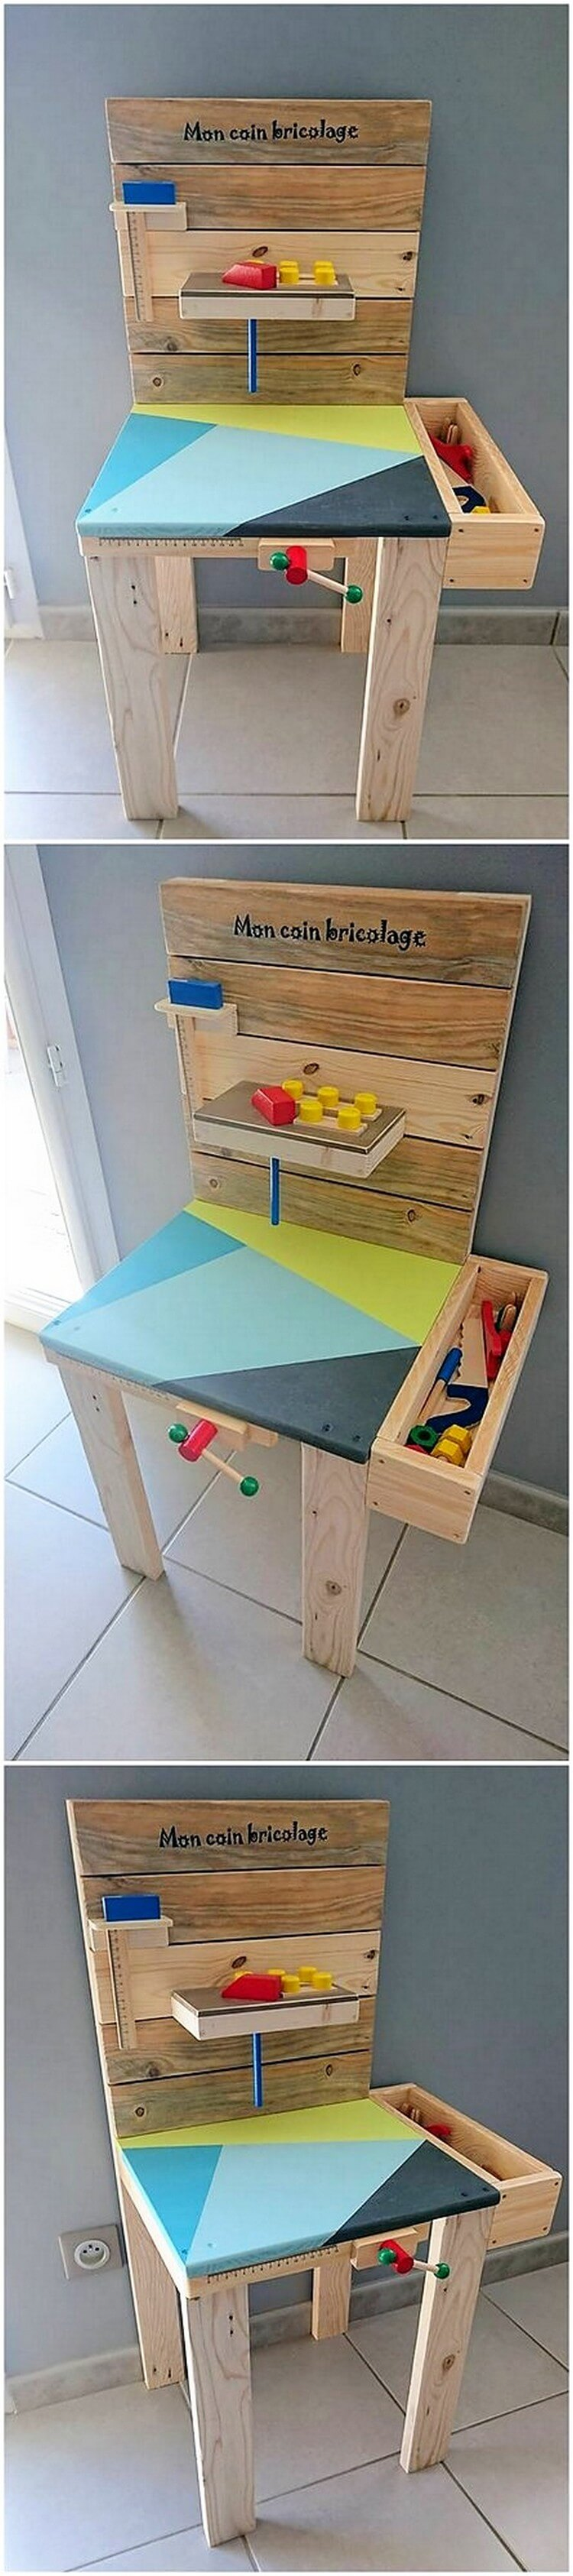 Pallet Game Creation for Kids